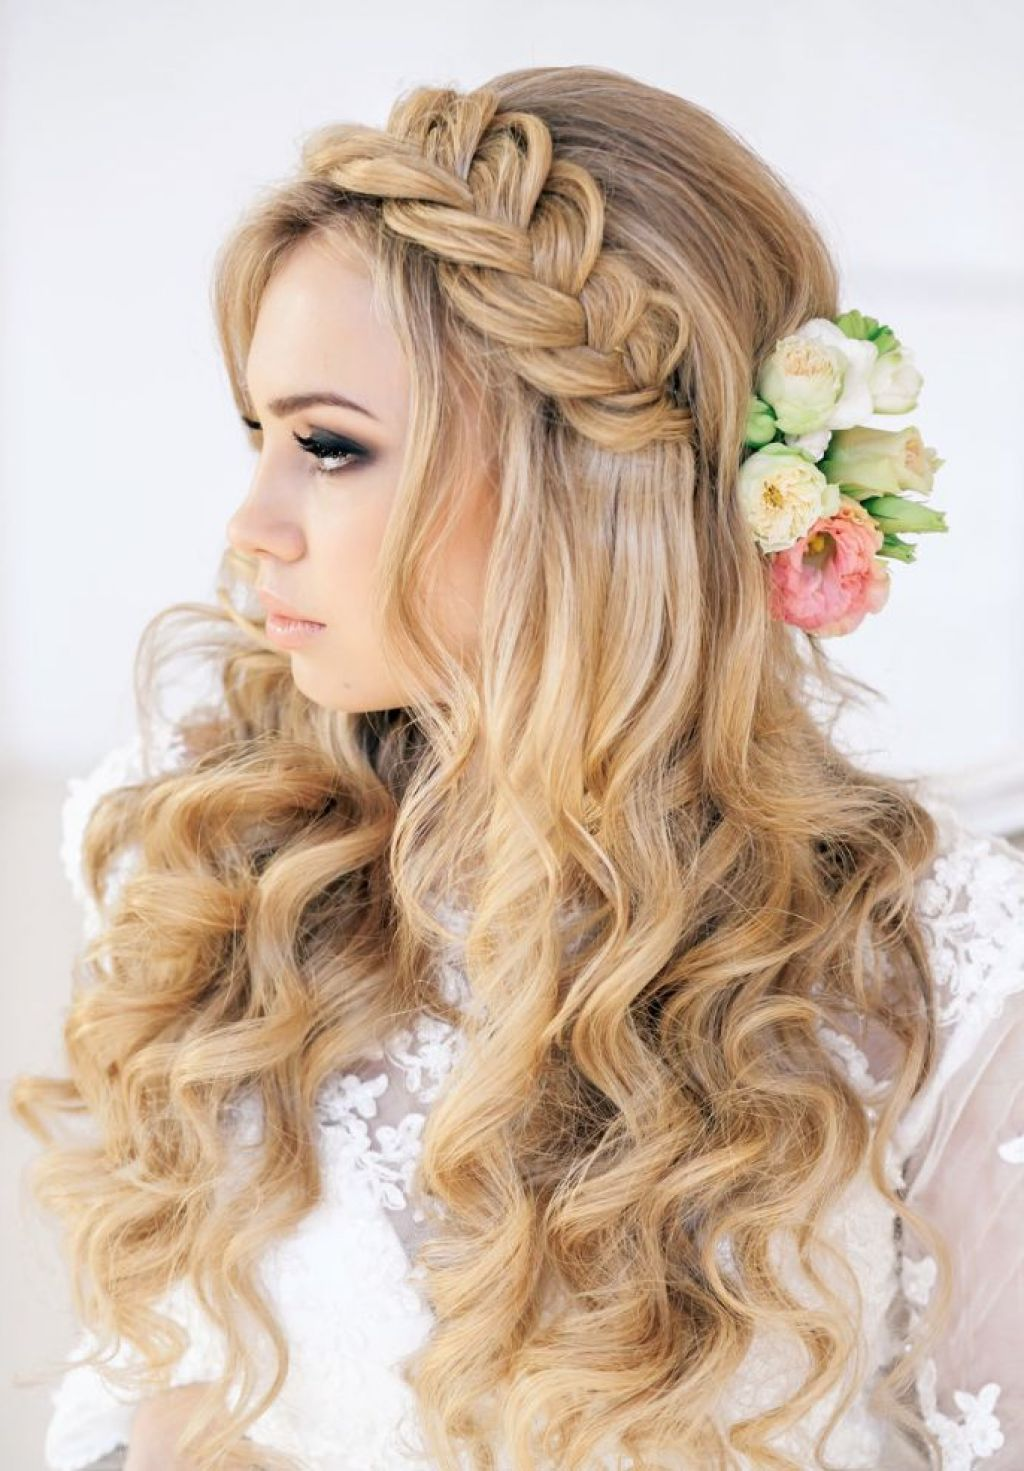 Long Blonde Hairstyle Ideas With Braid Headband ...